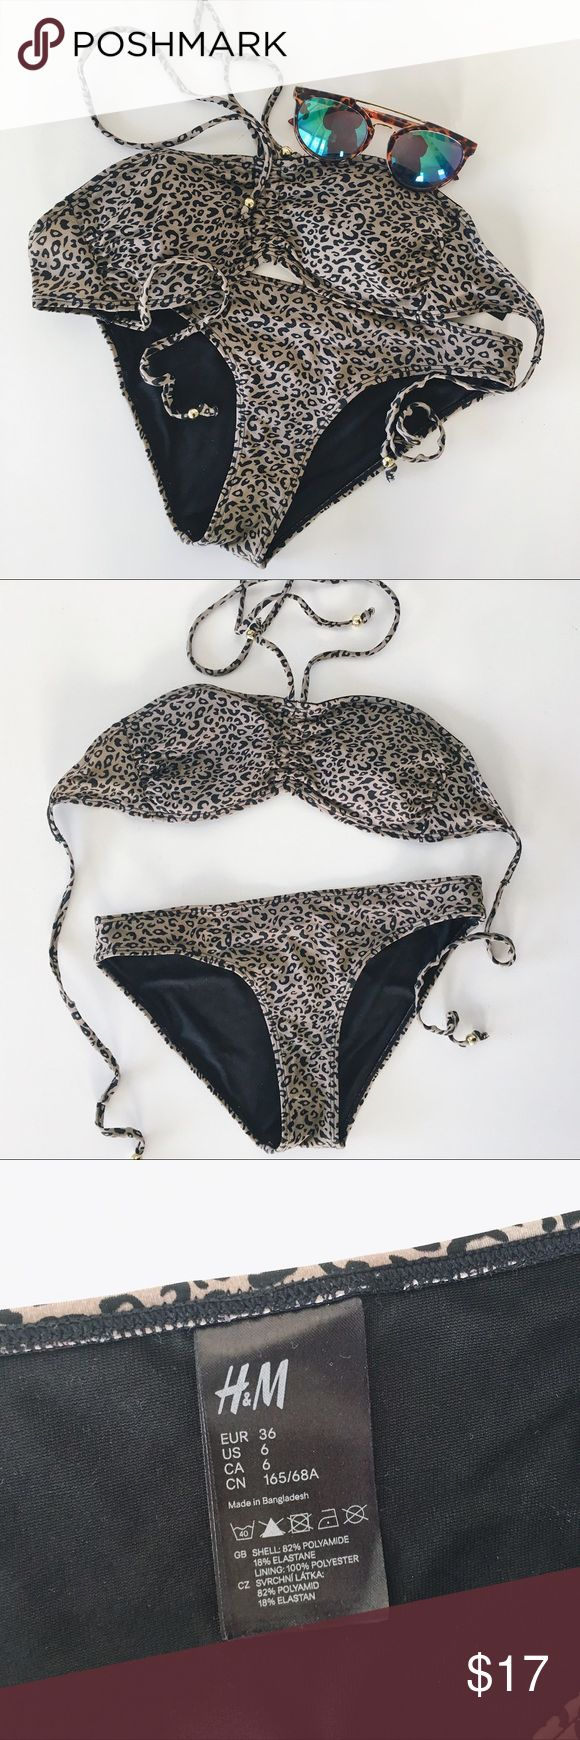 H&M Grey Leopard Print Bikini Cute little grey cheetah print bikini from H&M. Ruched bandeau top with ties at the neck and ties at the back. Small gold bead at the ends of each tie. Removable padding on the top. Classic bikini style bottoms. Only worn twice - great condition except for a small split seam which is unnoticeable and could easily be sewn back together - see picture for detail. Size 6 from H&M -  fits like a size small. H&M Swim Bikinis